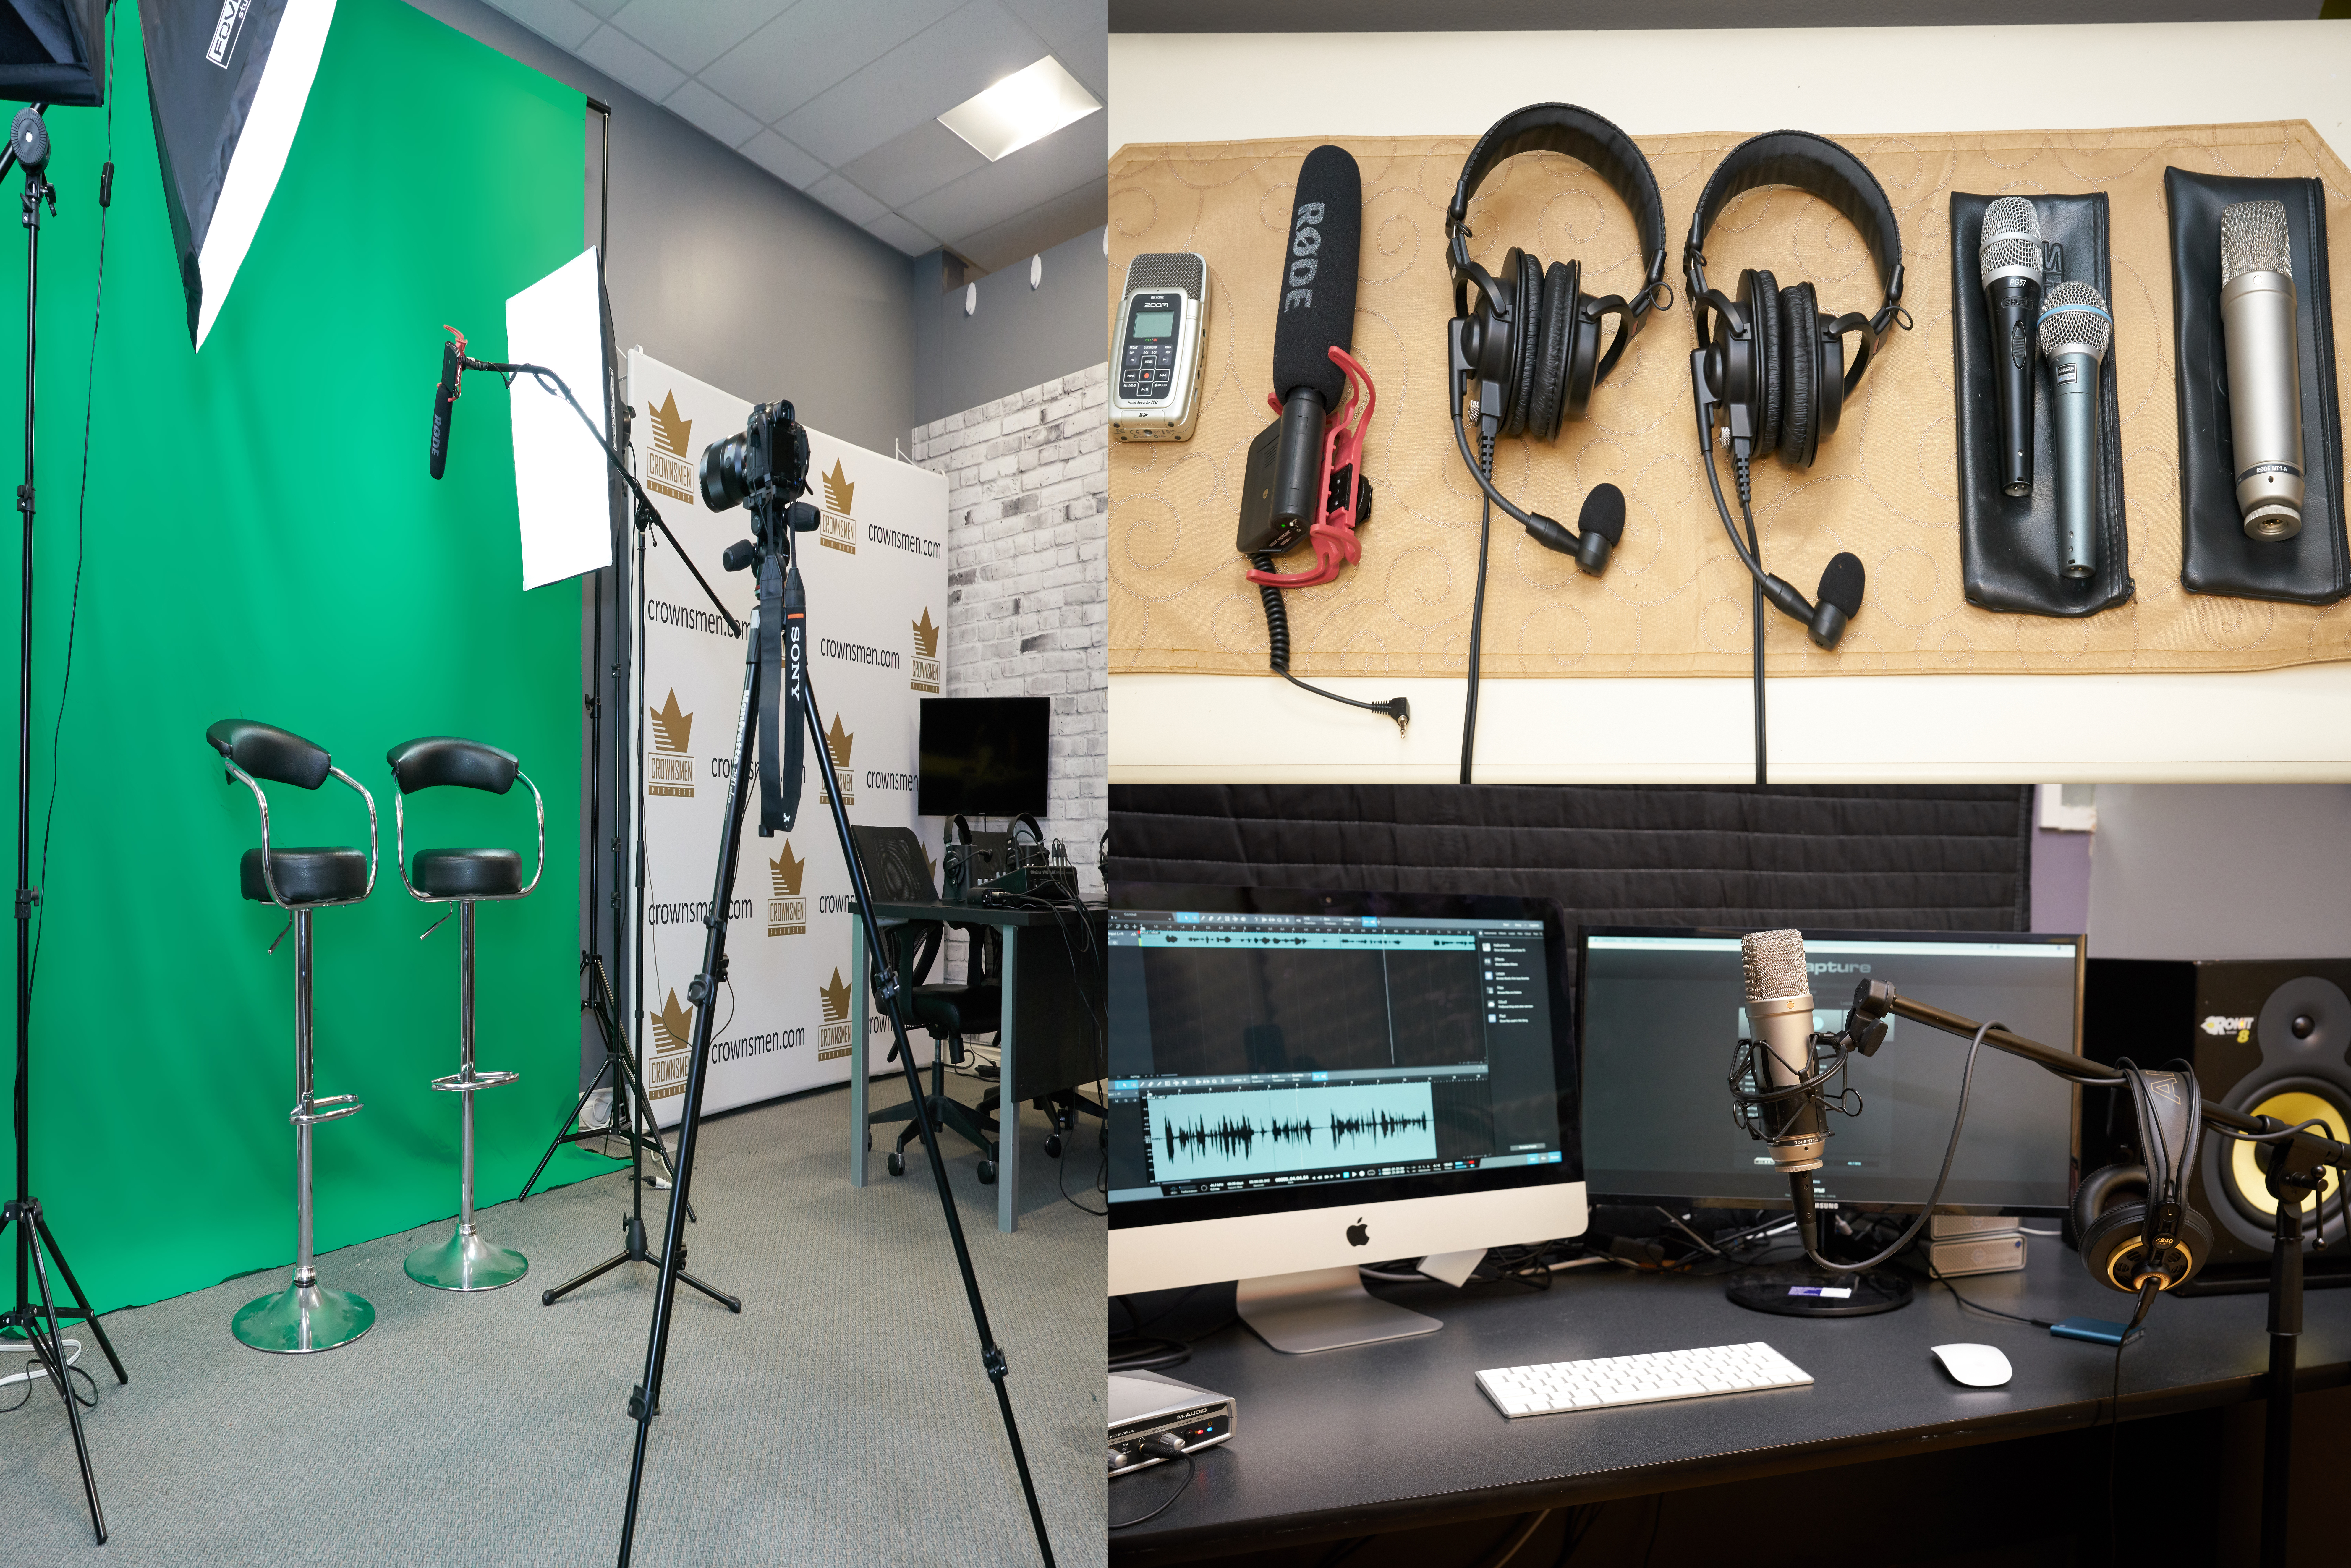 Full Podcast, Film, and Editing Workstation for Rent New Westminster